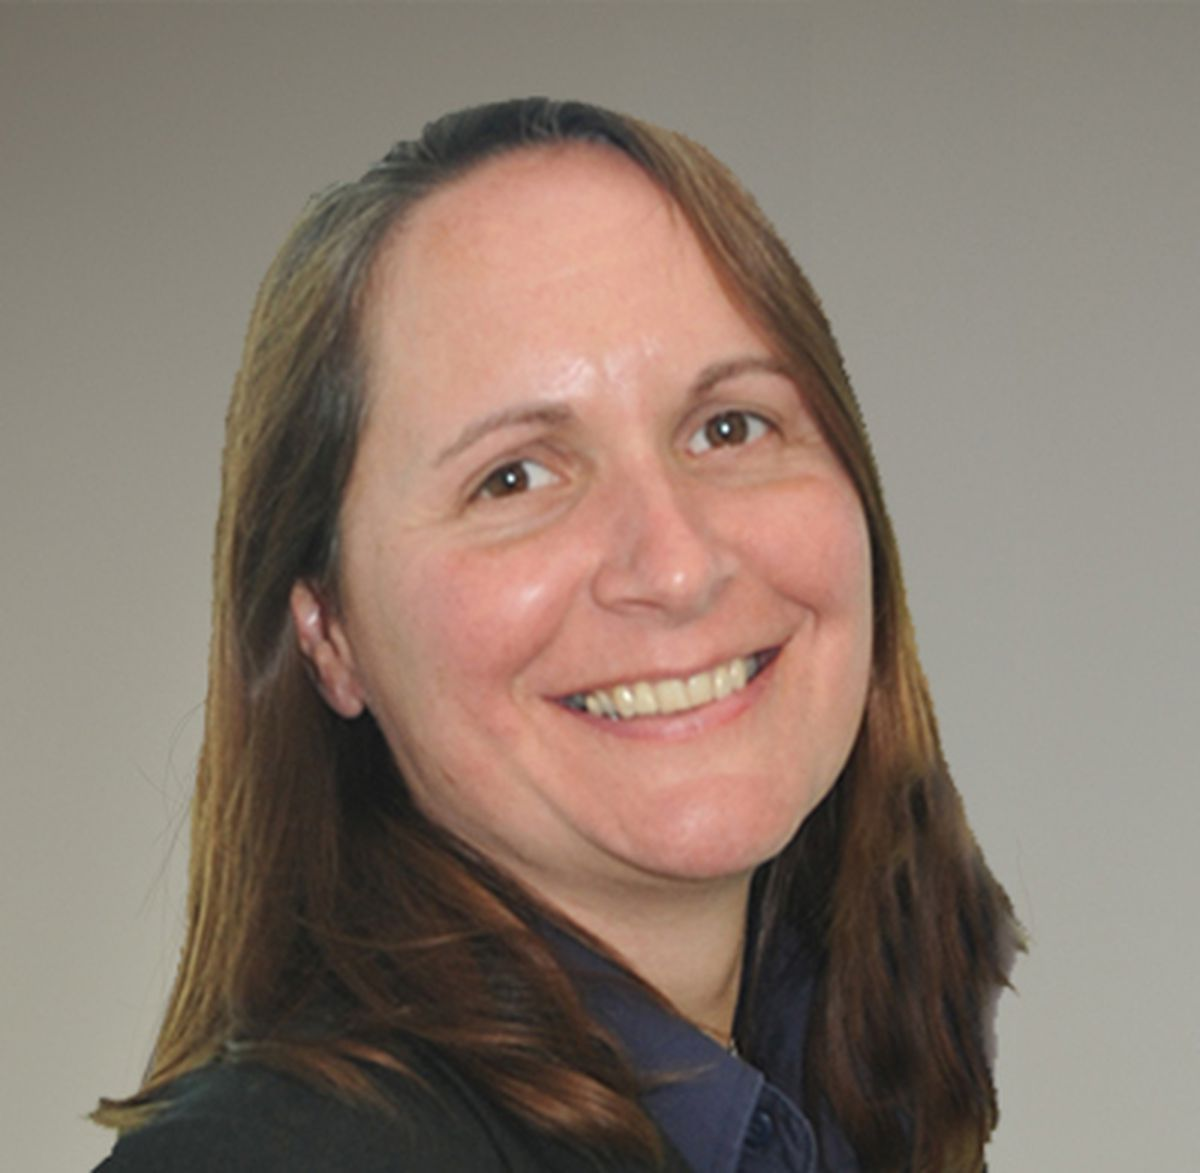 Shropshire Chamber of Commerce director of business, Ruth Ross